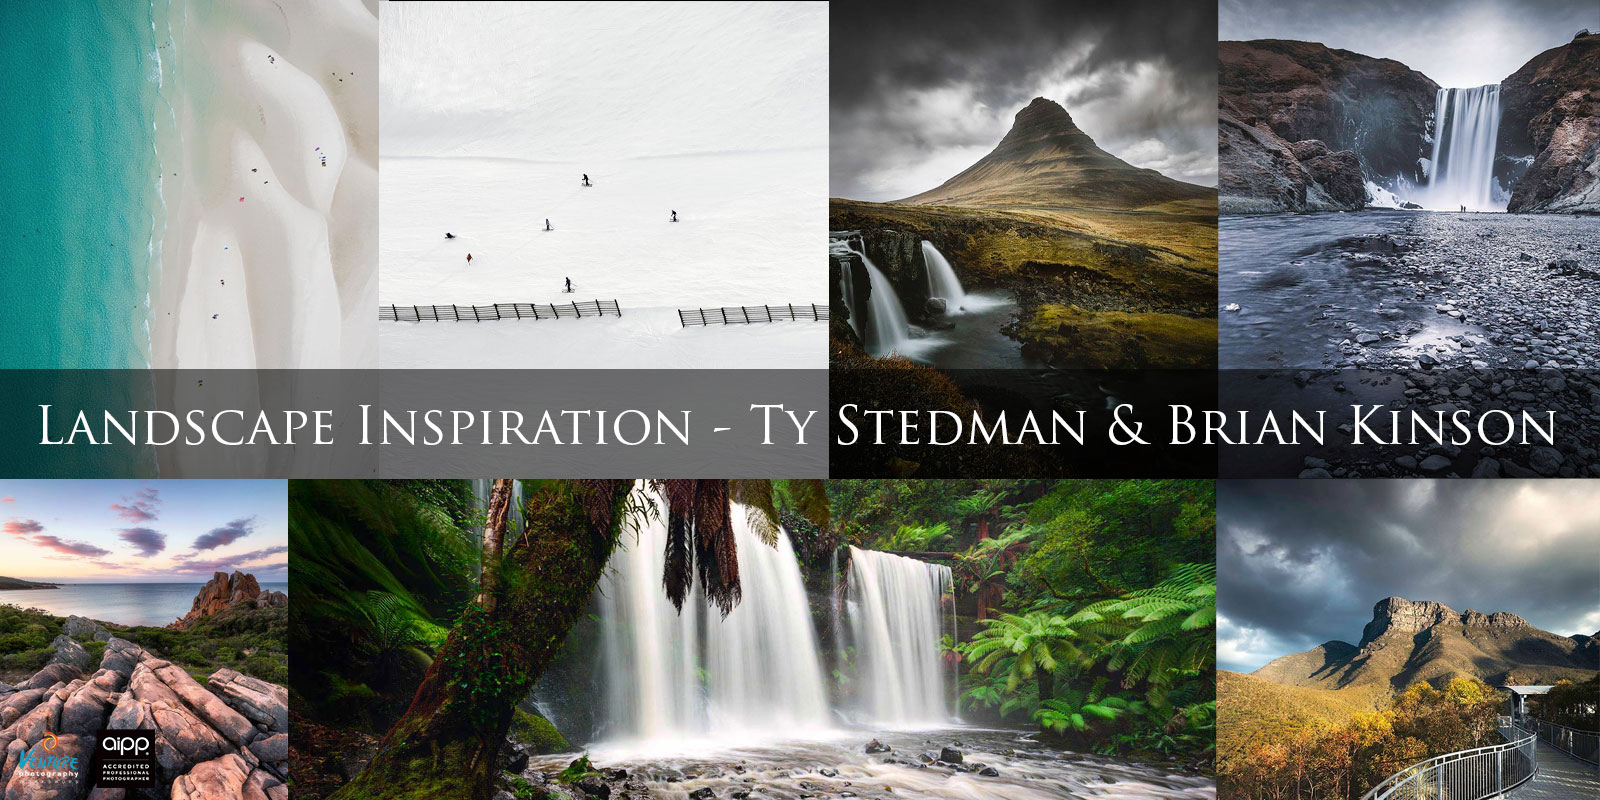 Landscape Inspiration with Ty Stedman and Brian Kinson